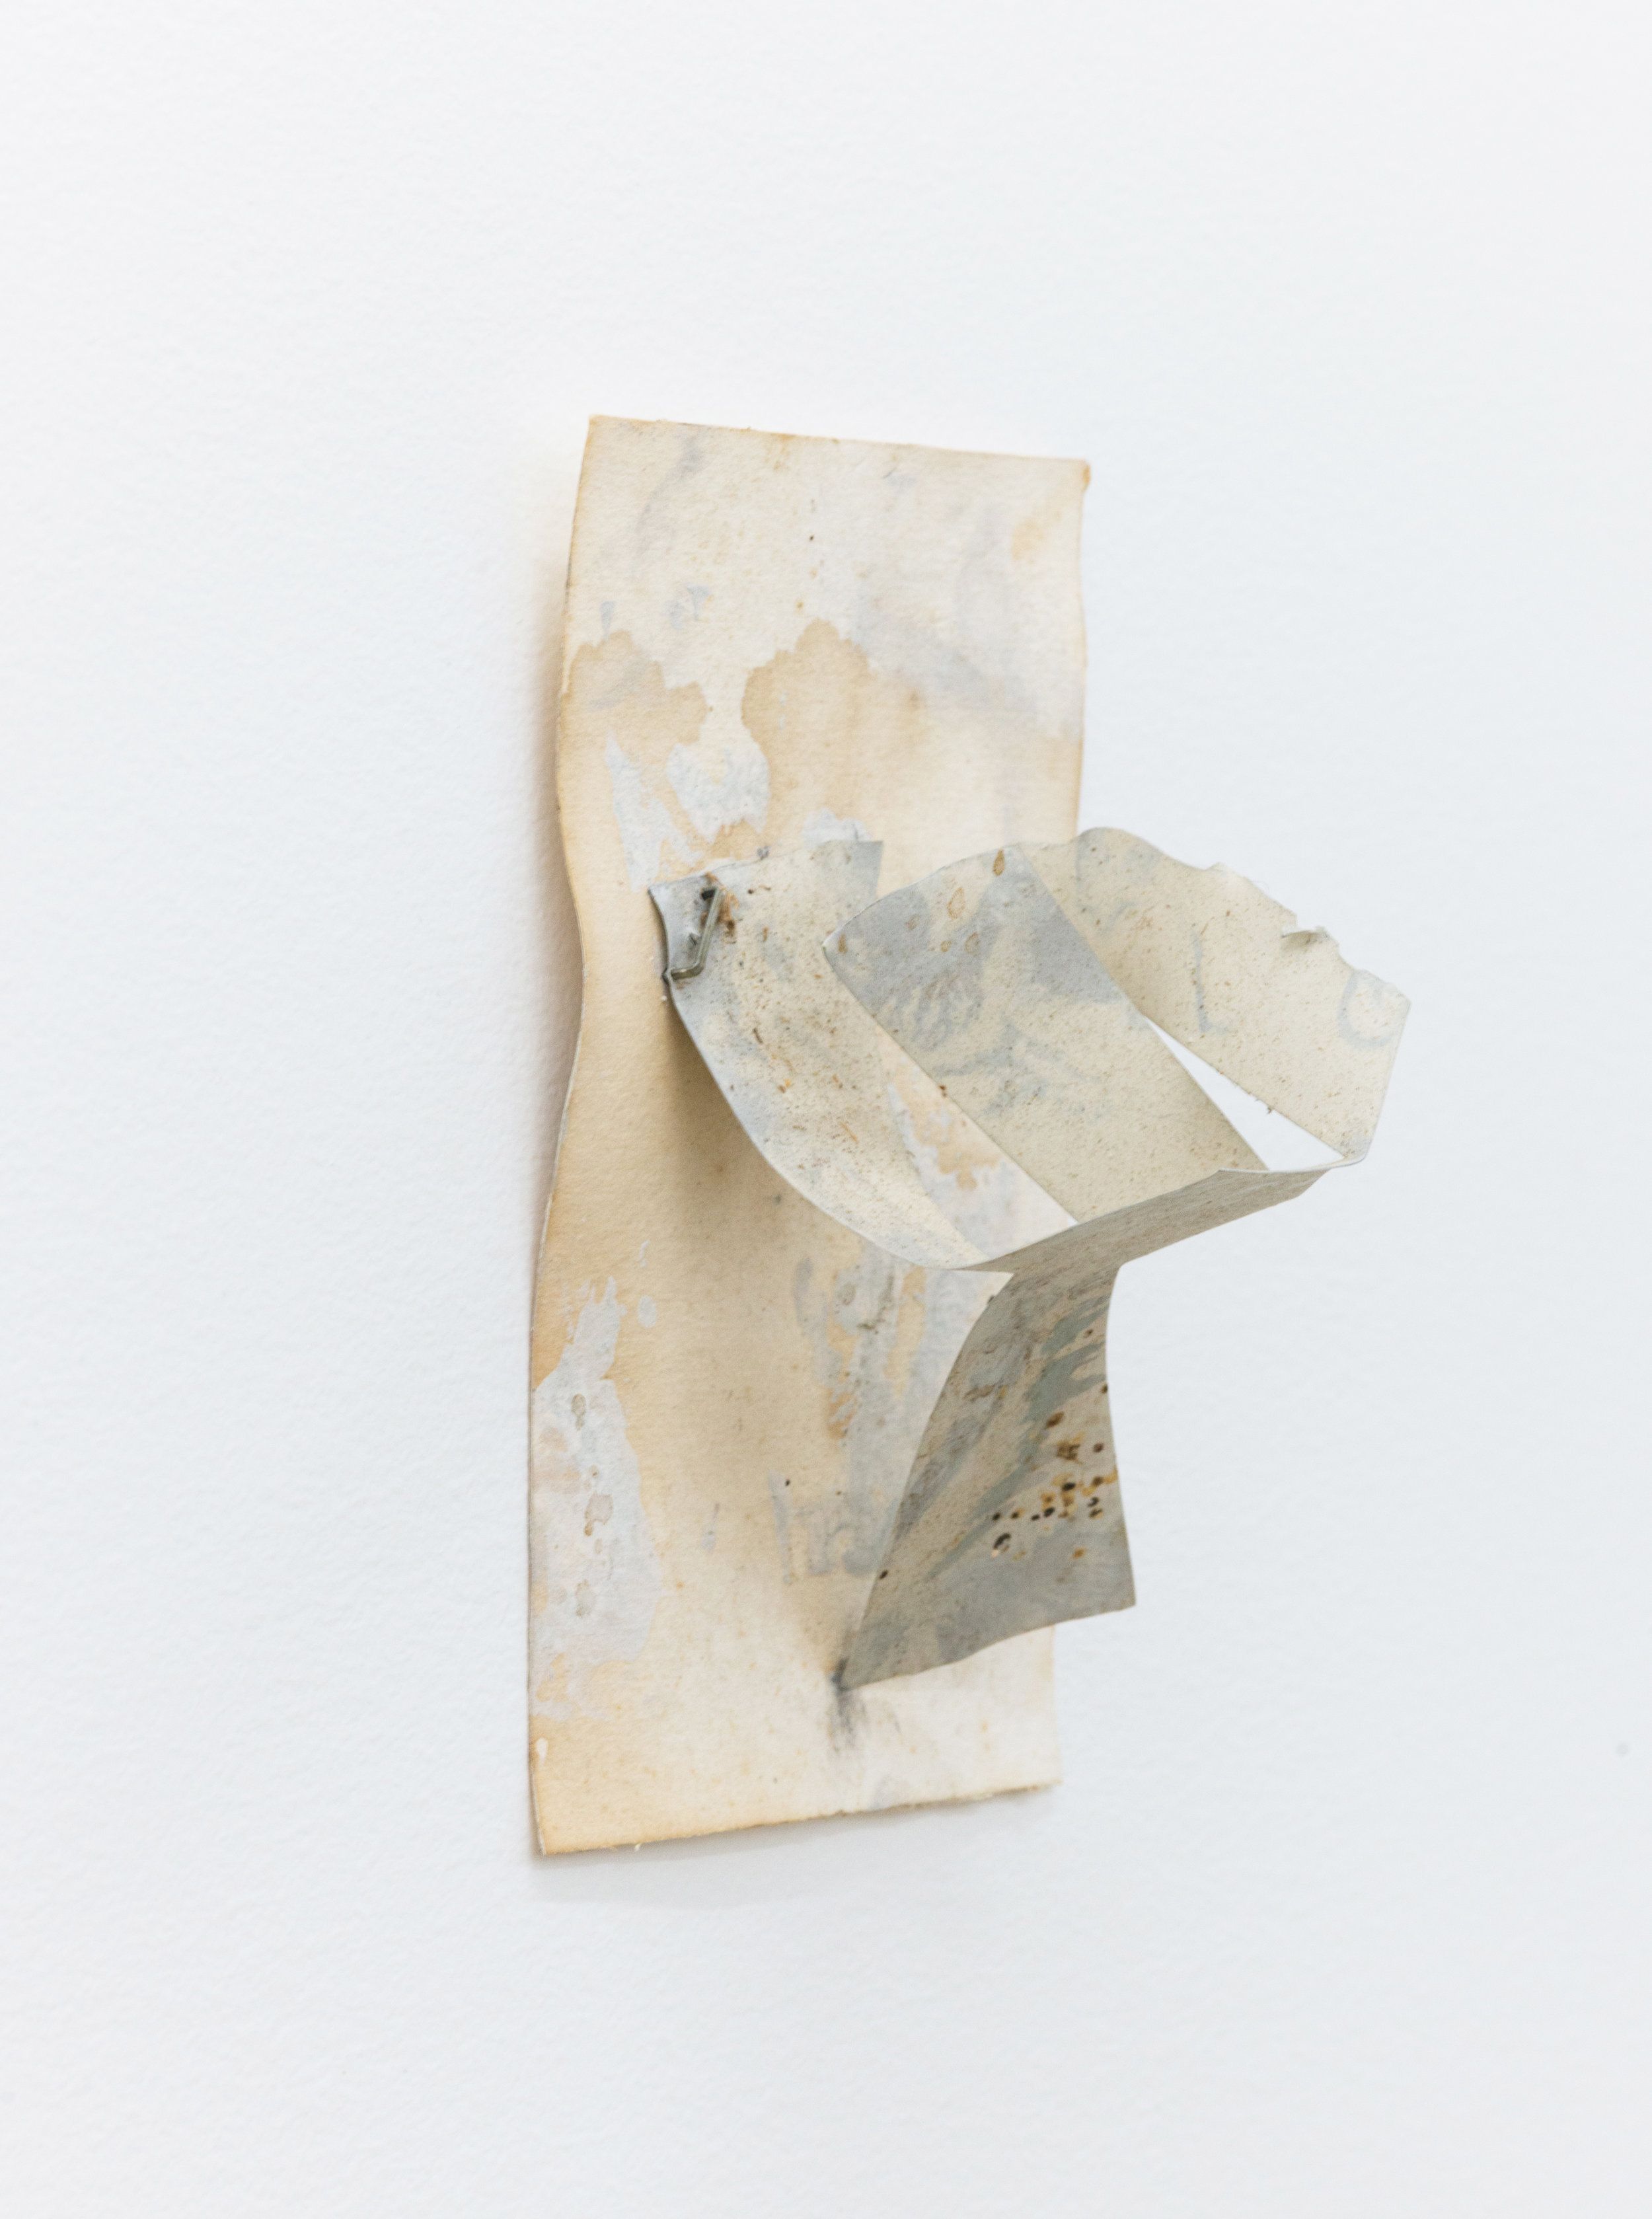 Louise Fishman   Untitled,  2008 Acrylic on aluminum sheet, staple, paper 4 x 3 x 3 inches